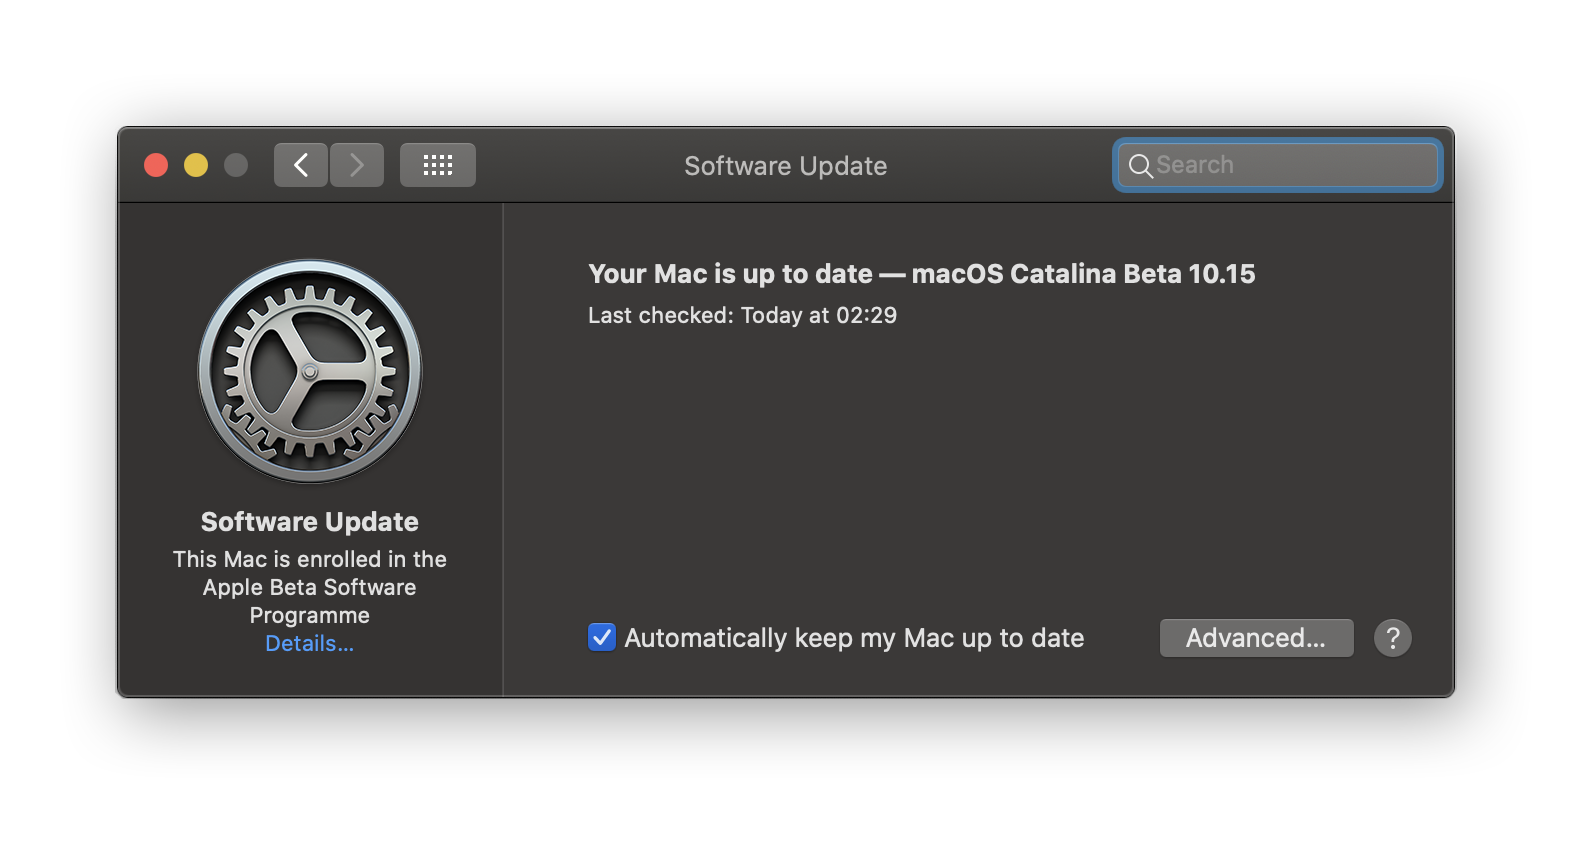 Updating macOS to speed up performance